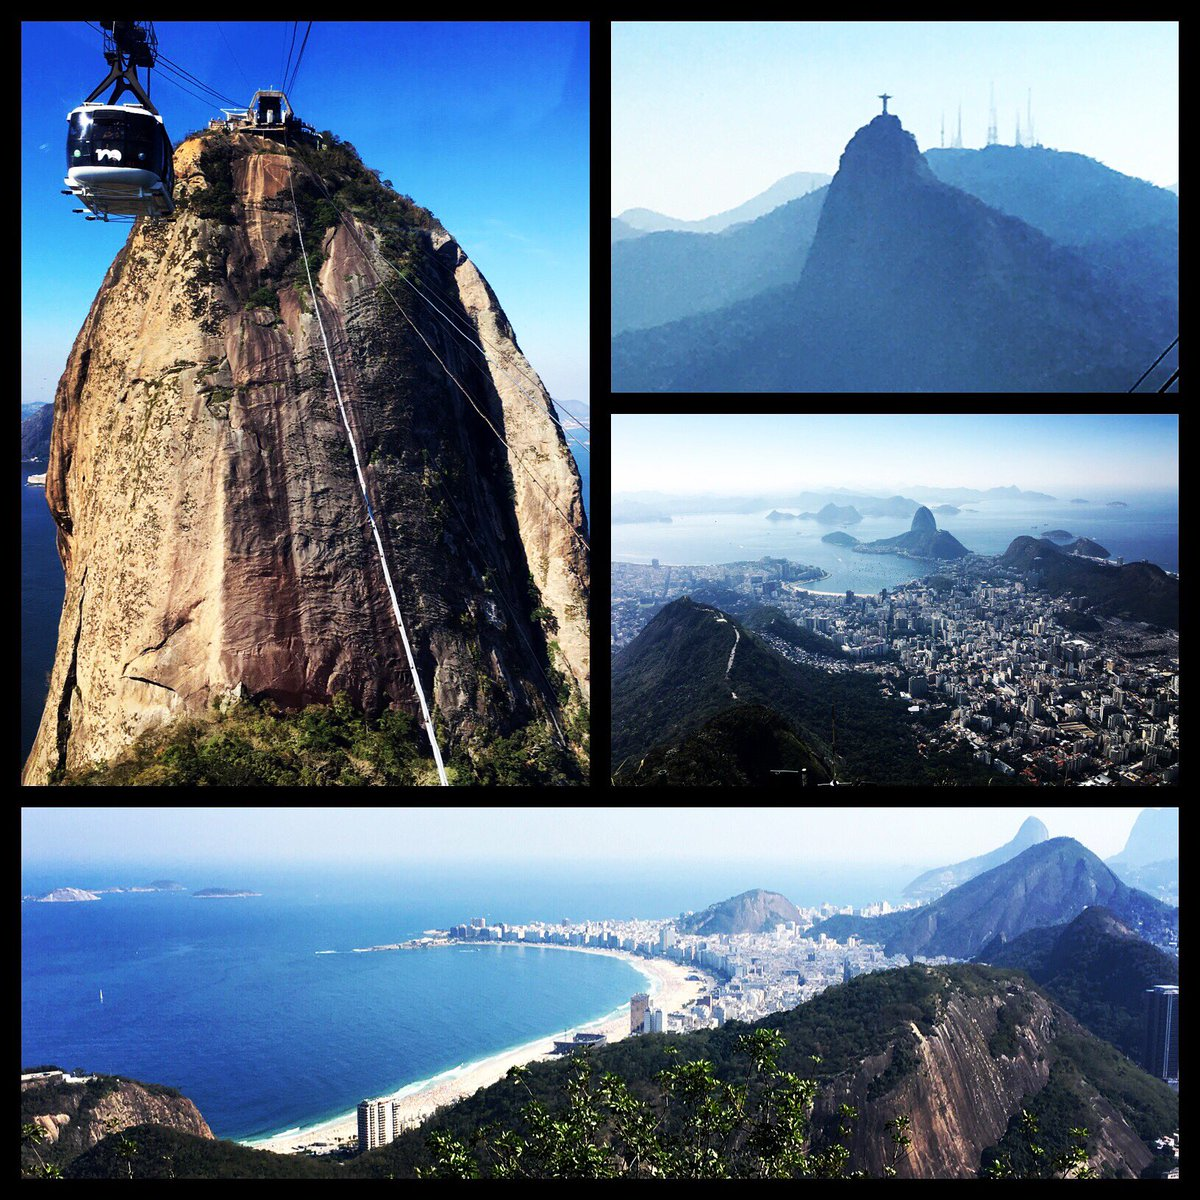 Doesn't matter which direction you look, it's all pretty pretty. #Rio